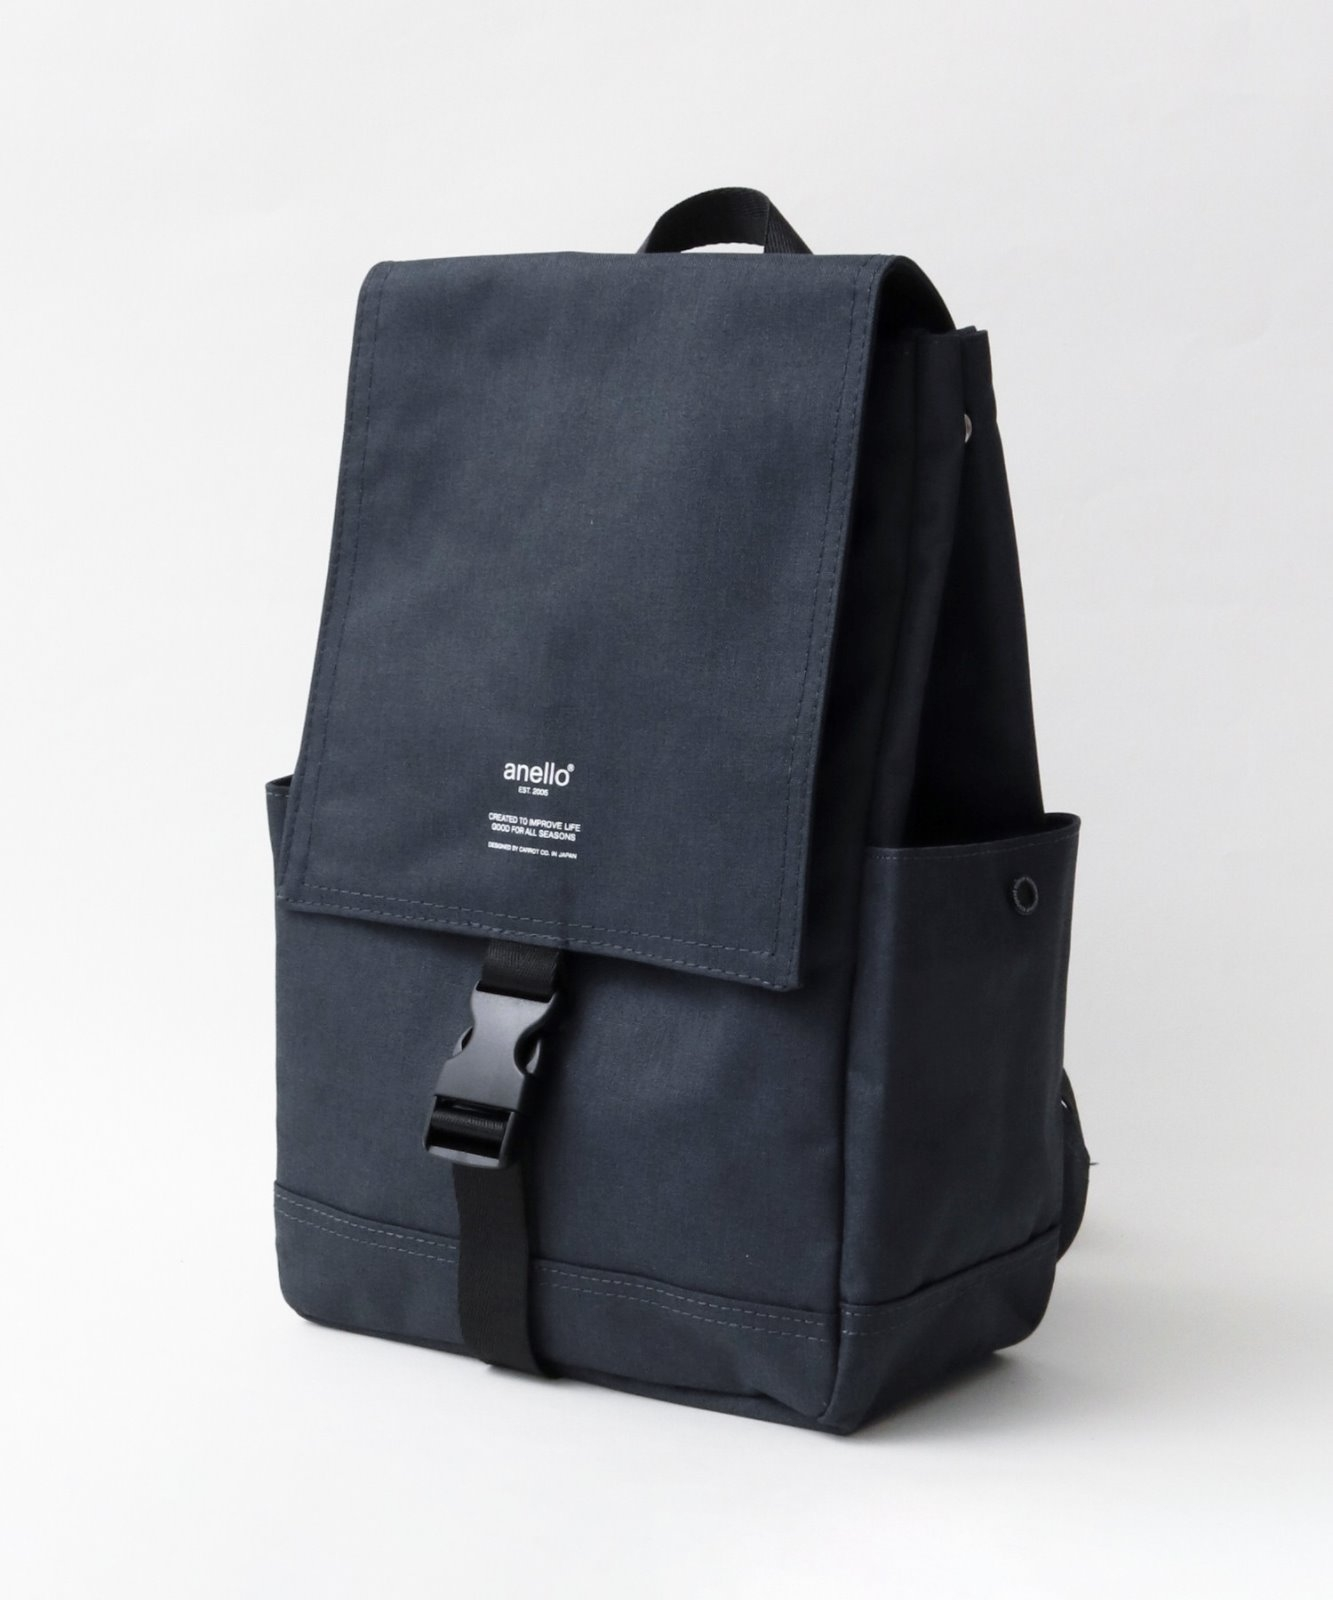 Japan famous brand Anello backpack product #9-2466279-18-9